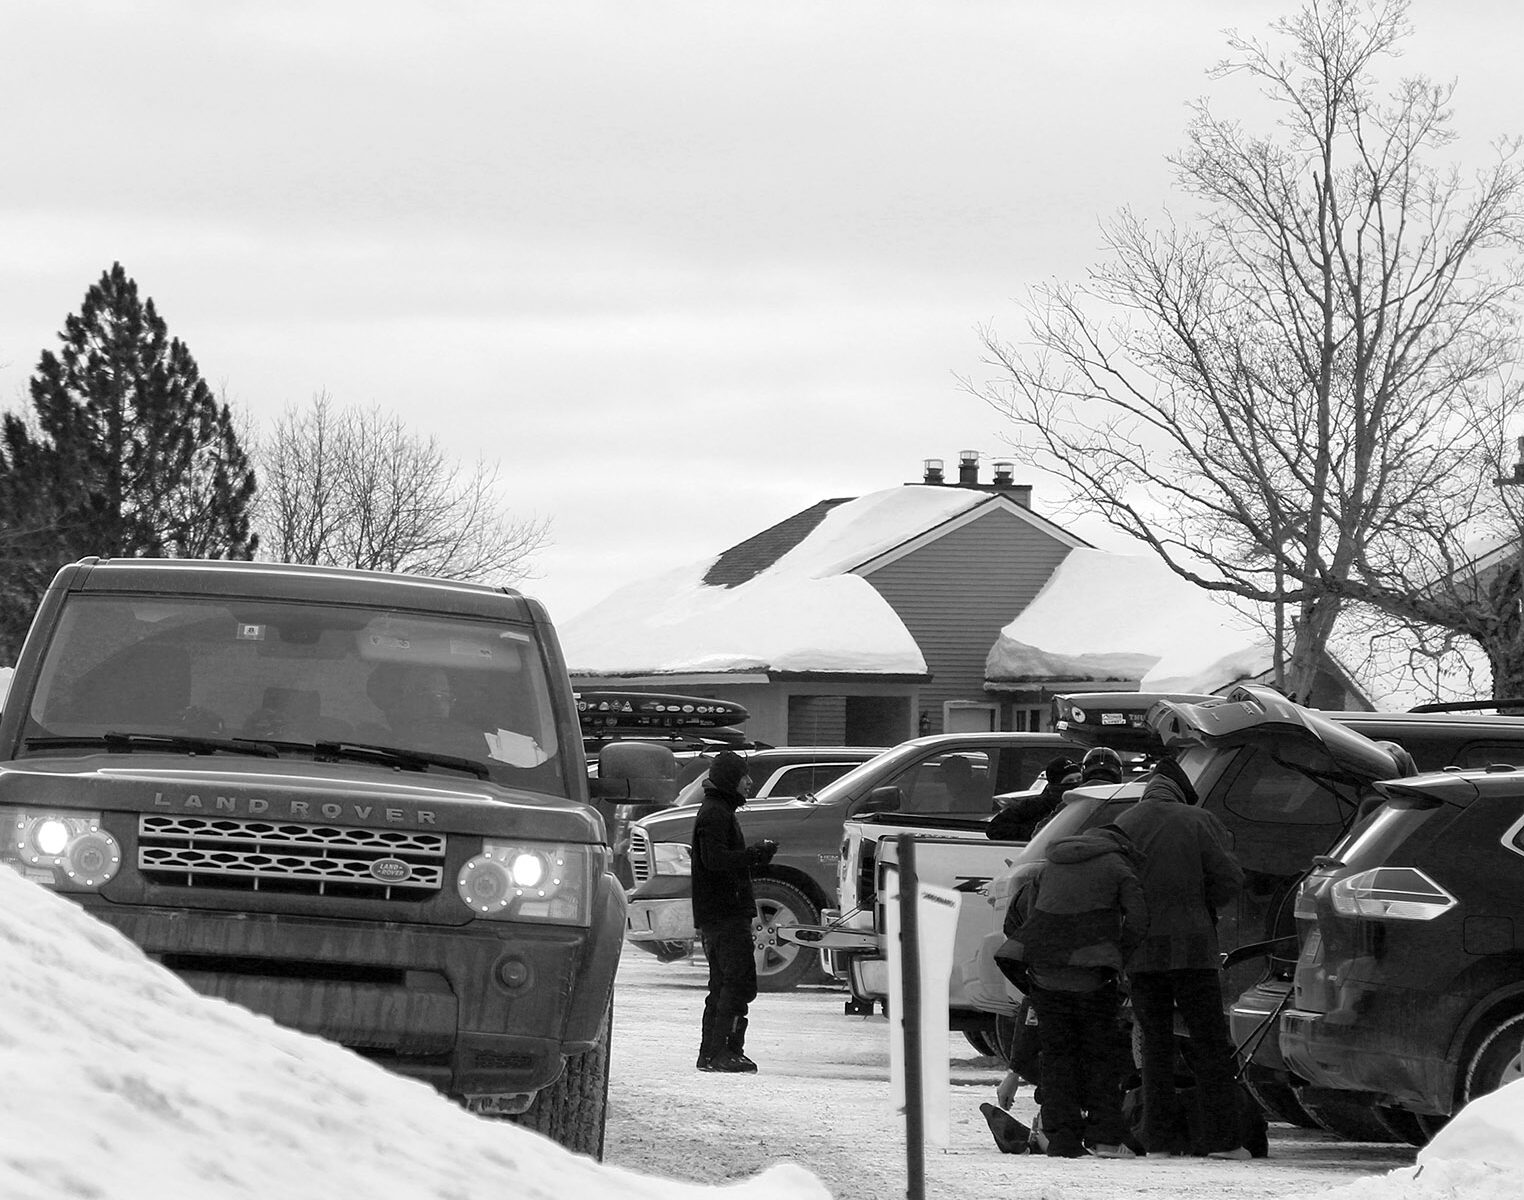 An image from a parking area in the Village on a typical ski day in March at Bolton Valley Ski Resort in Vermont